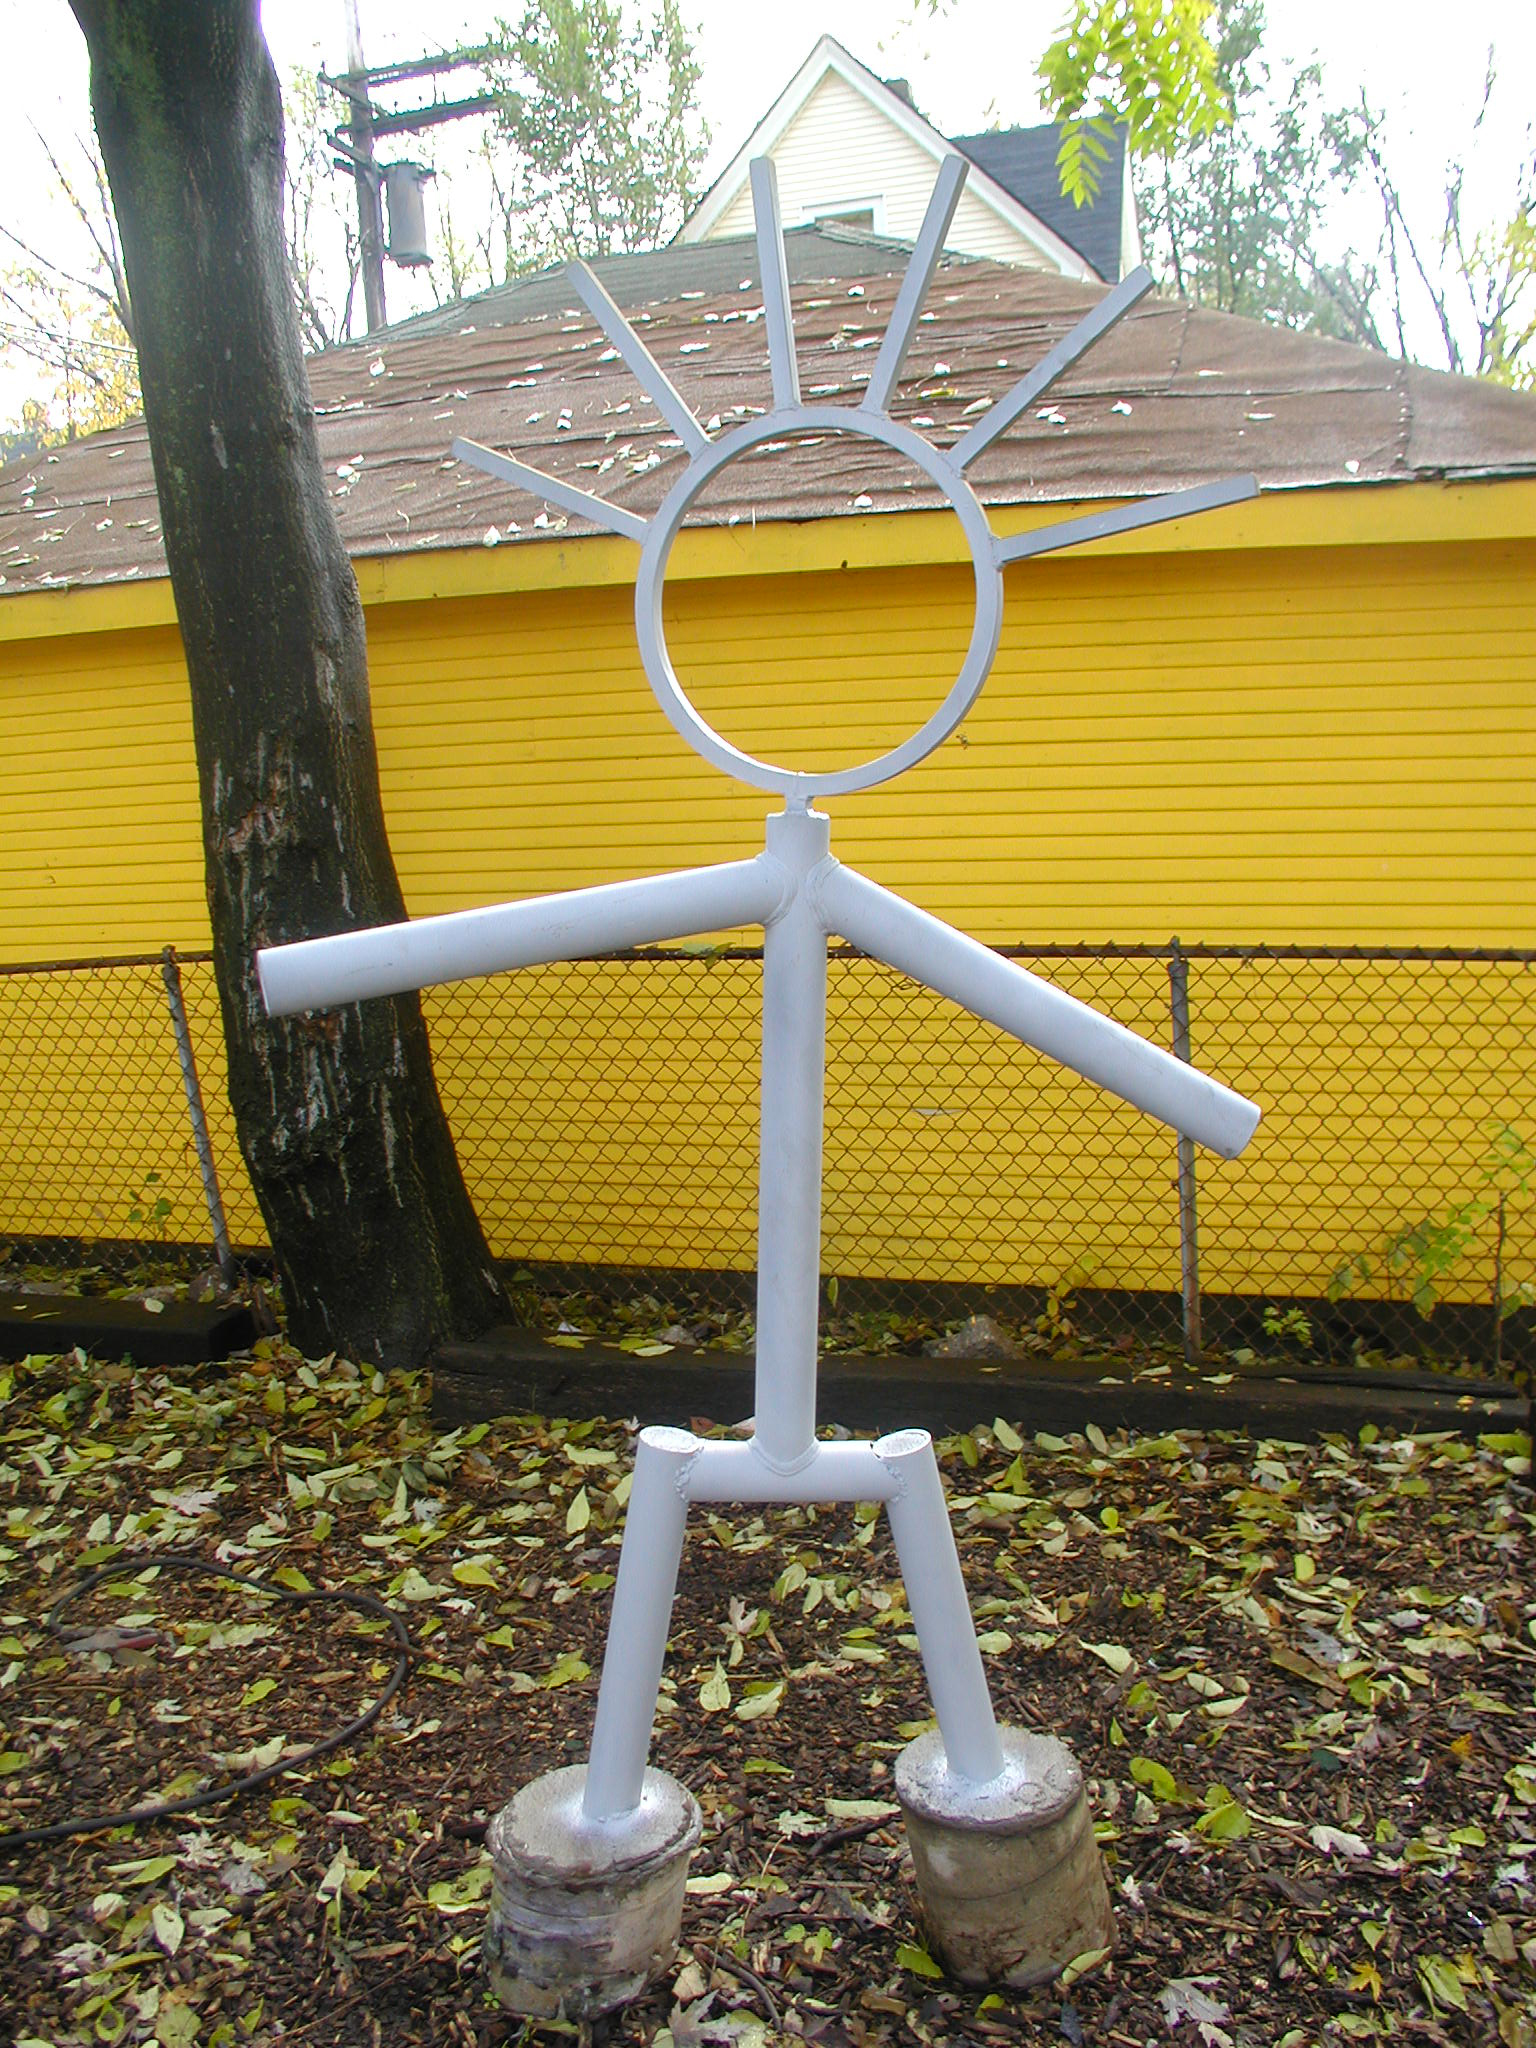 austin community play sculpture2.JPG